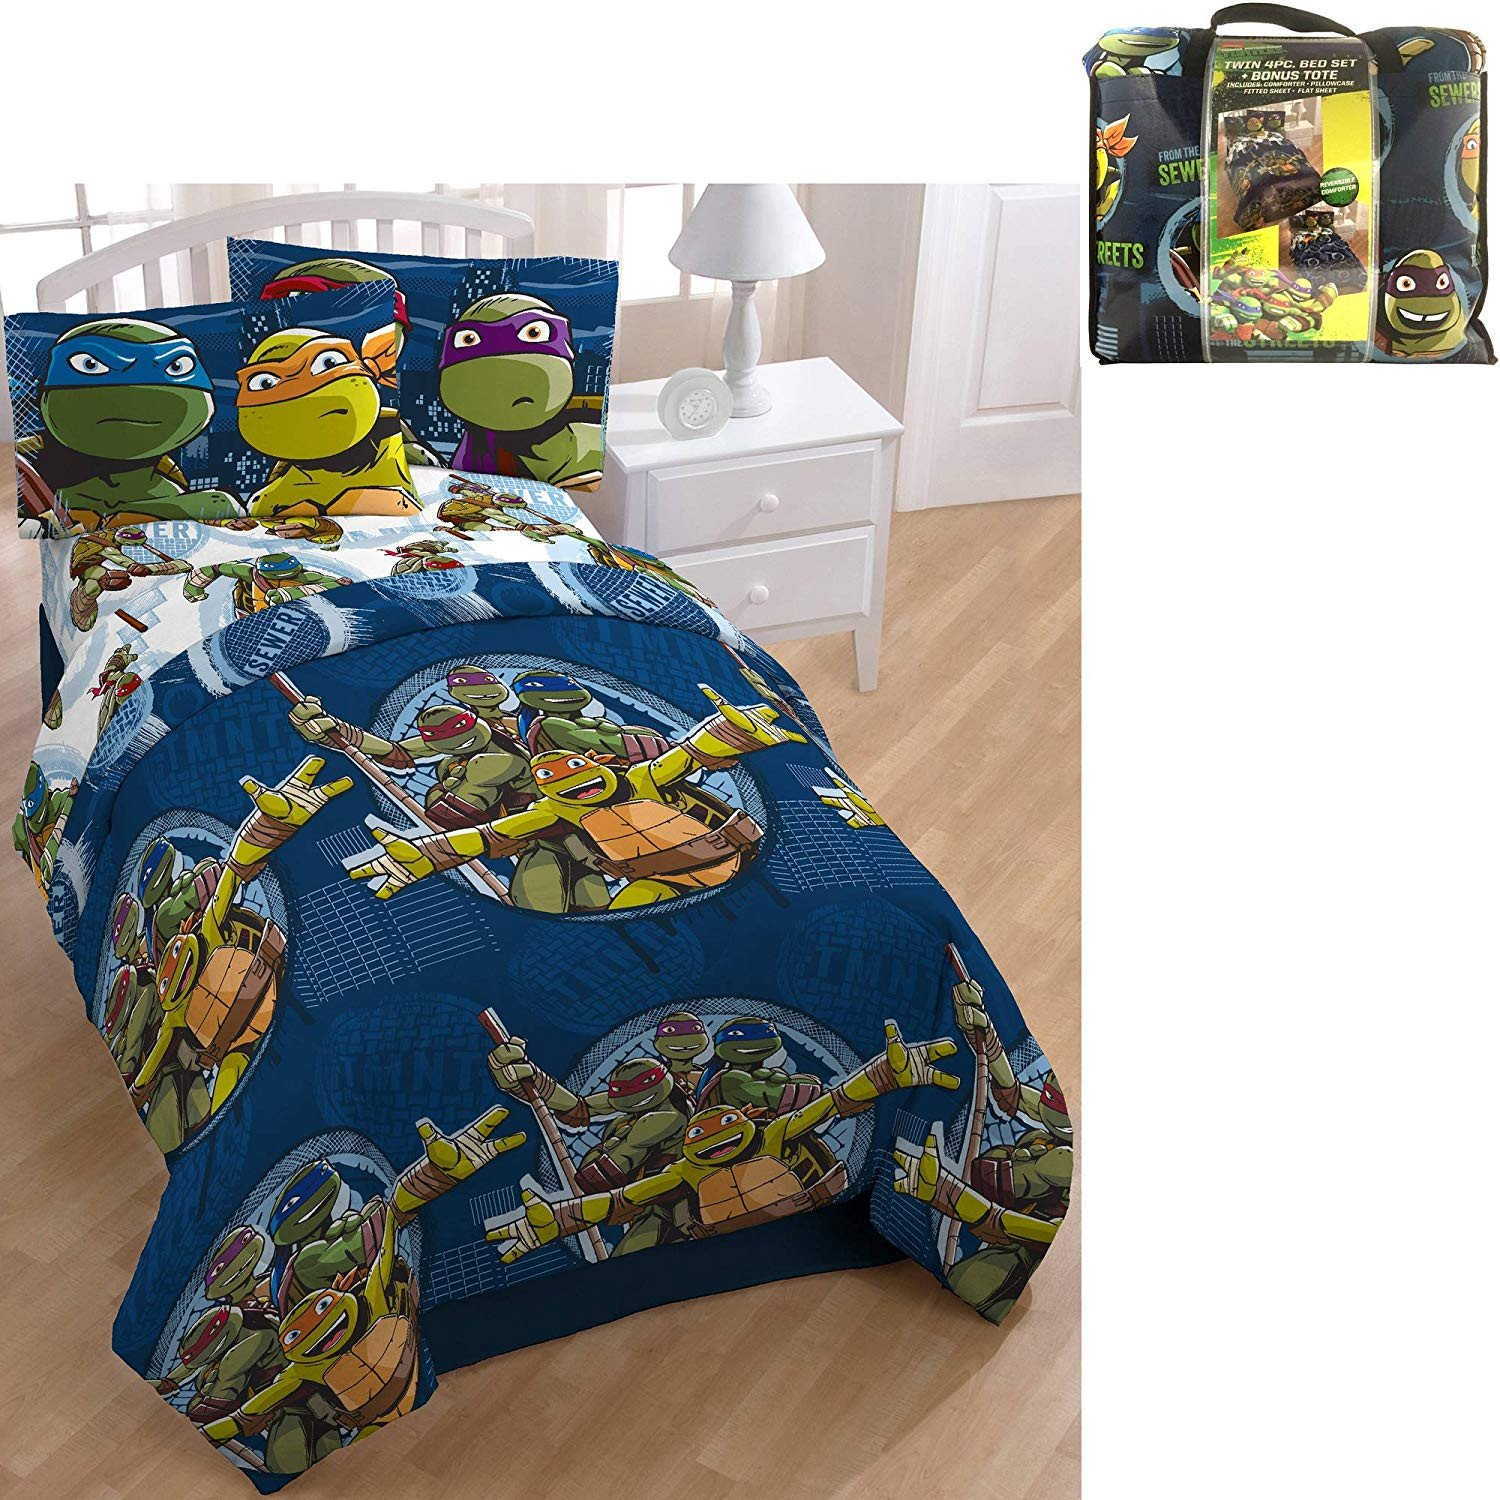 Teenage Mutant Ninja Turtles Bedroom Beautiful D I D 5 Piece Kids Green Blue Teenage Mutant Ninja Turtles forter Twin Set Tmnt Bedding Rapheal Leonardo Donatello Michelangelo Warriors Blue